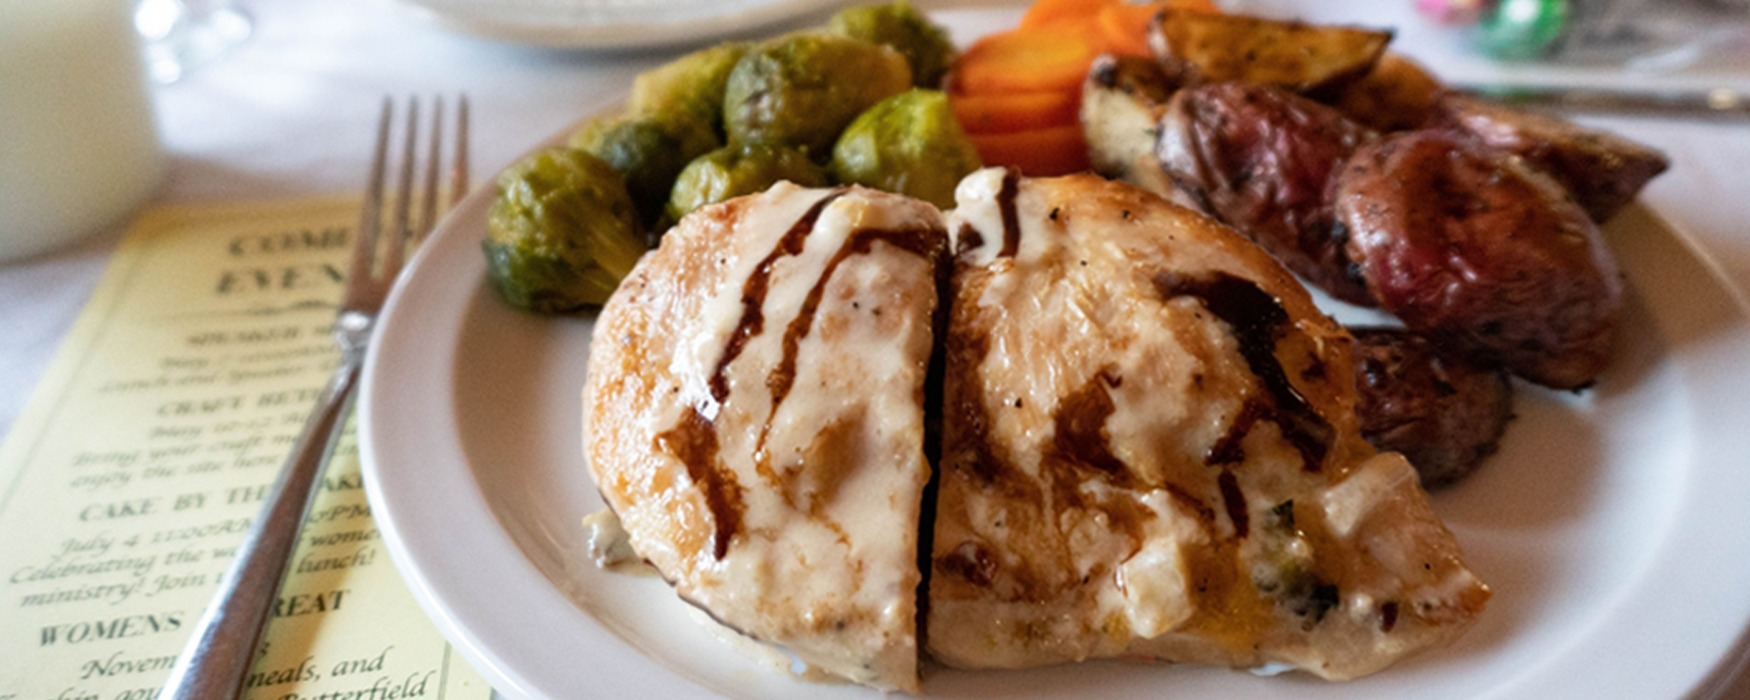 Stuffed balsamic chicken with brussel sprouts, carrots, and roasted potatoes on a dinner plate.